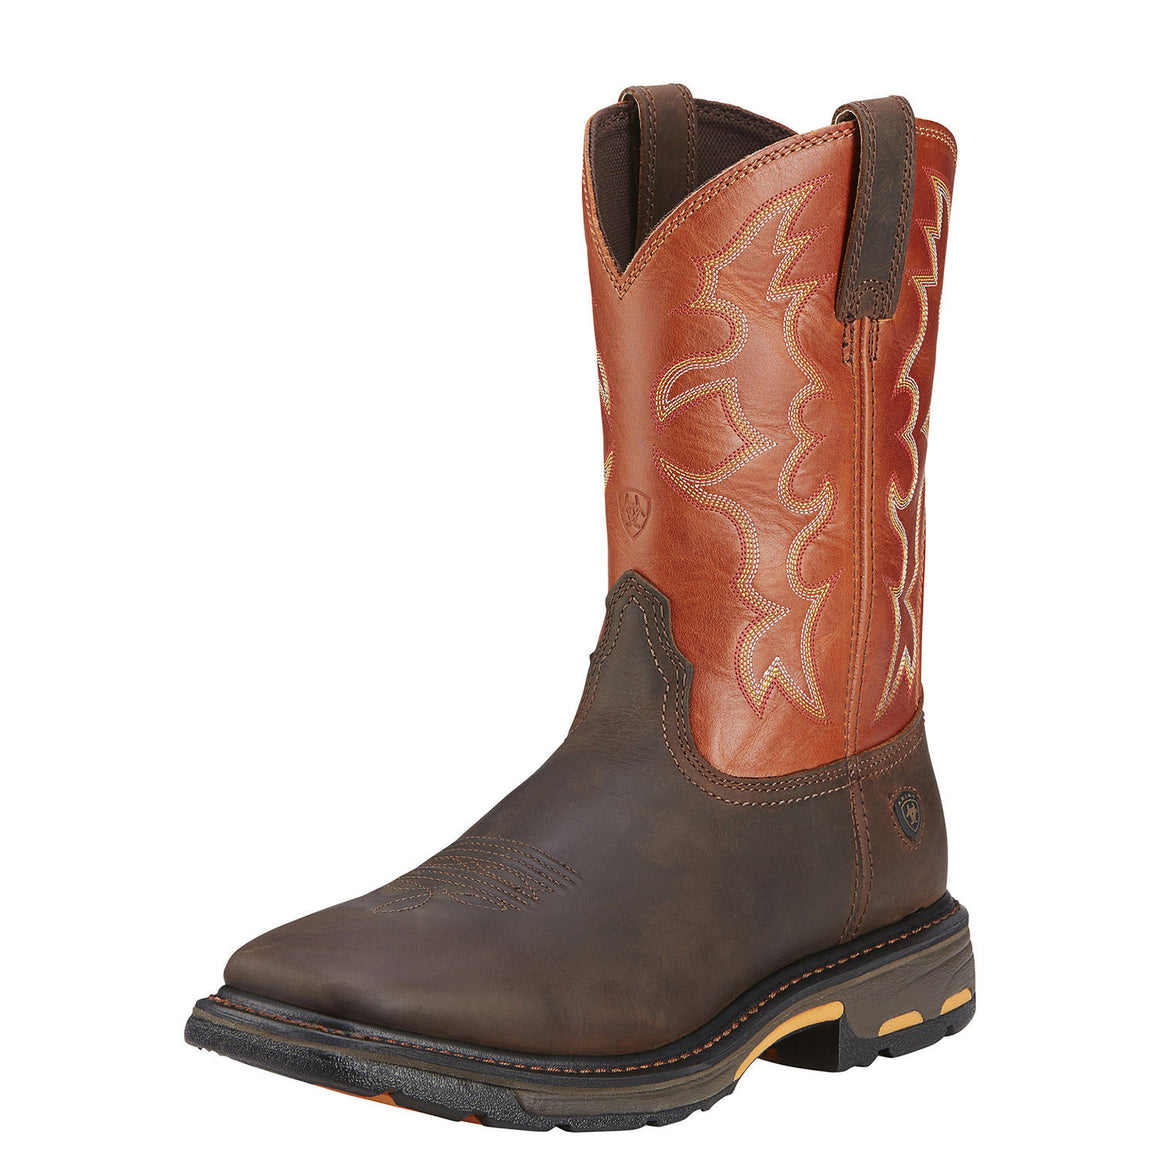 Ariat Men's Workhog Wide Square Toe - Dark Earth/Brick 10005888 - ShoeShackOnline